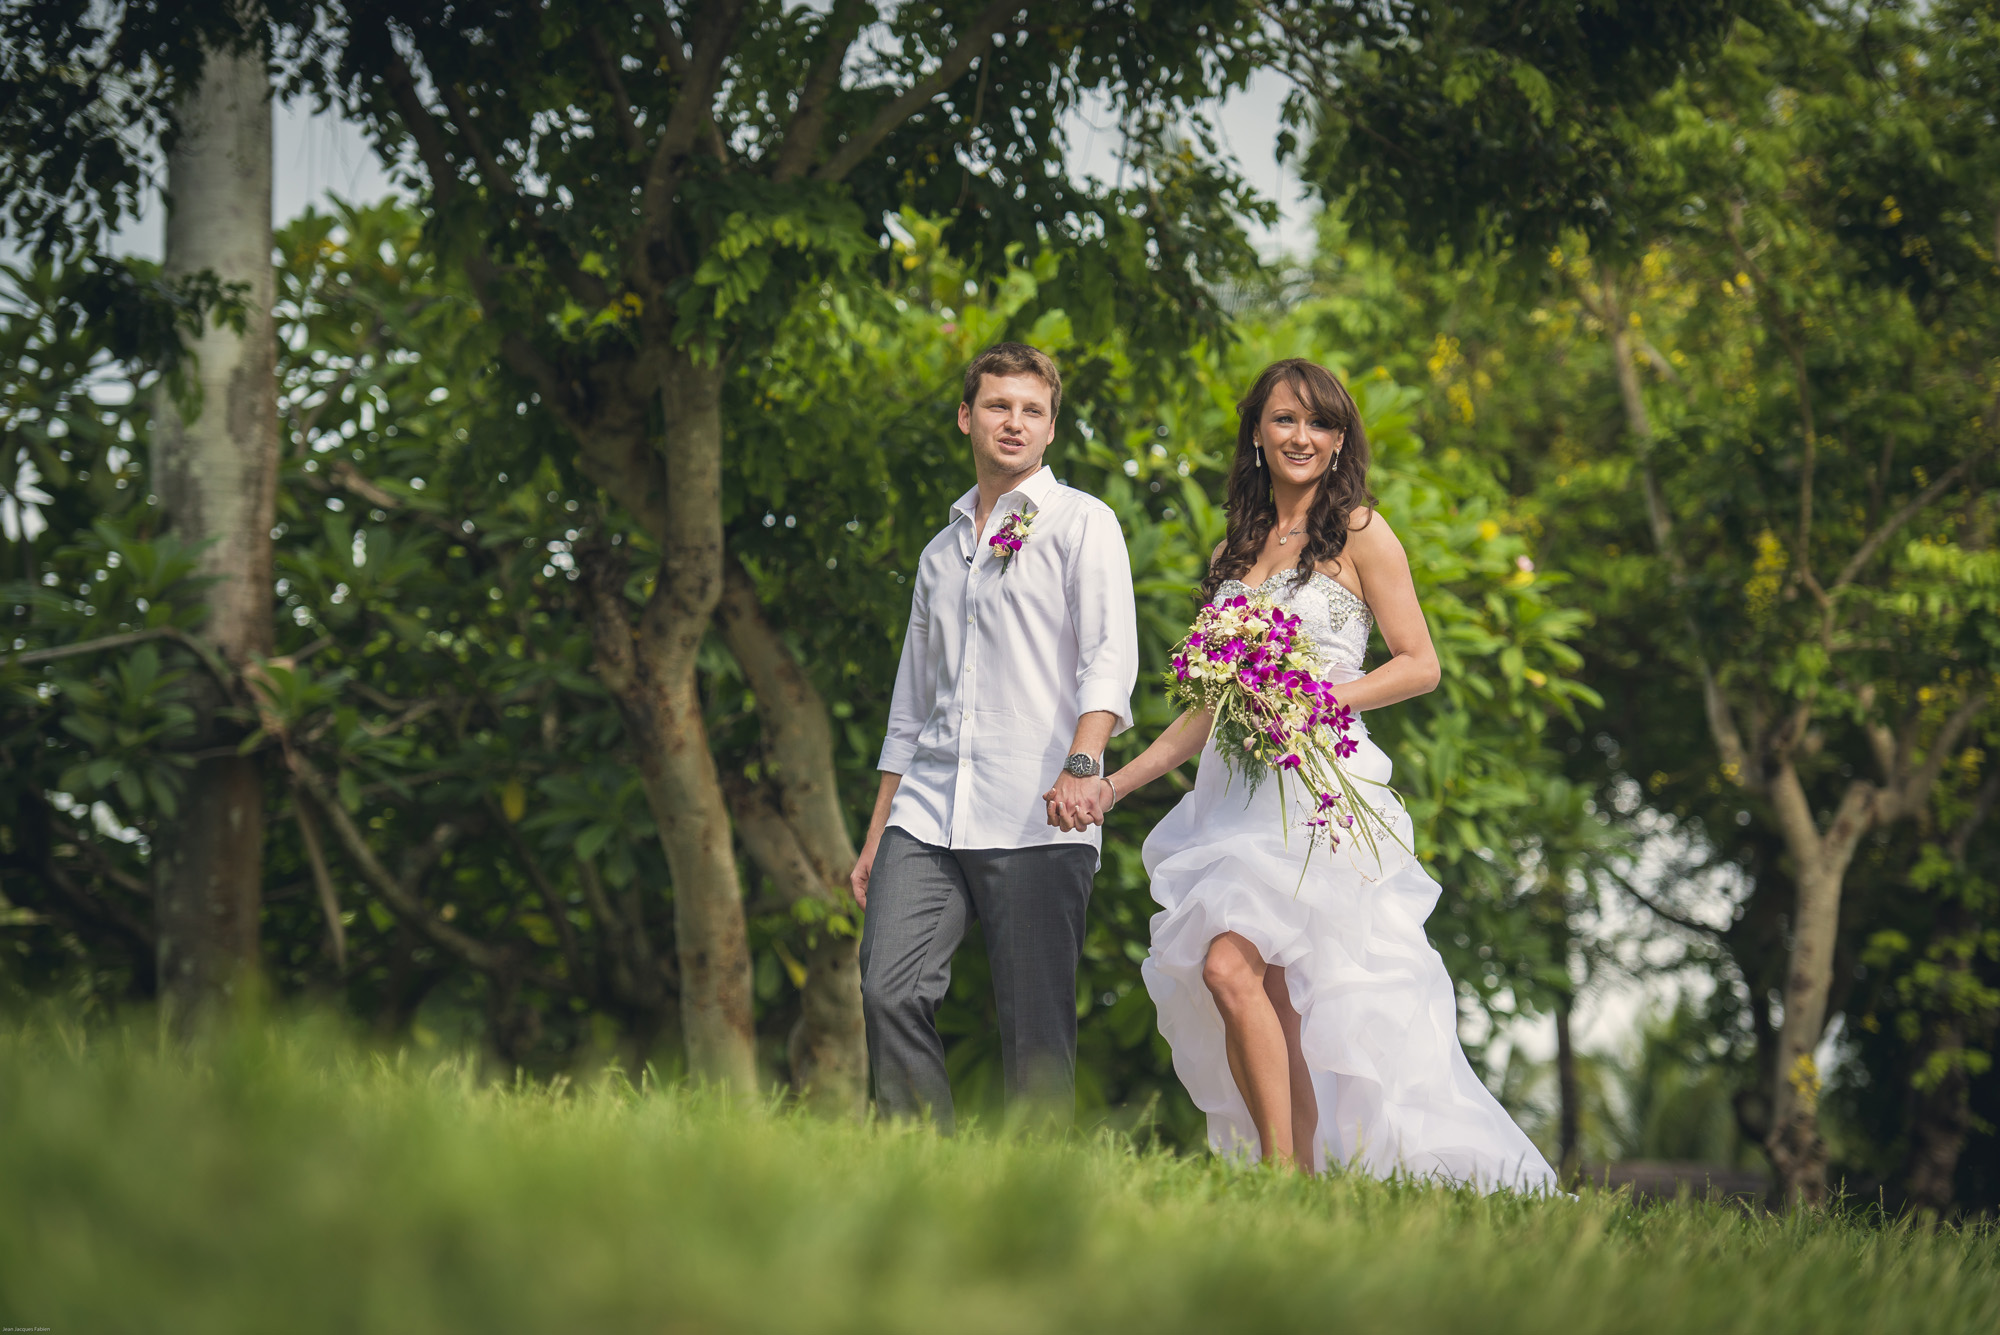 Justyna and Michael-27.jpg